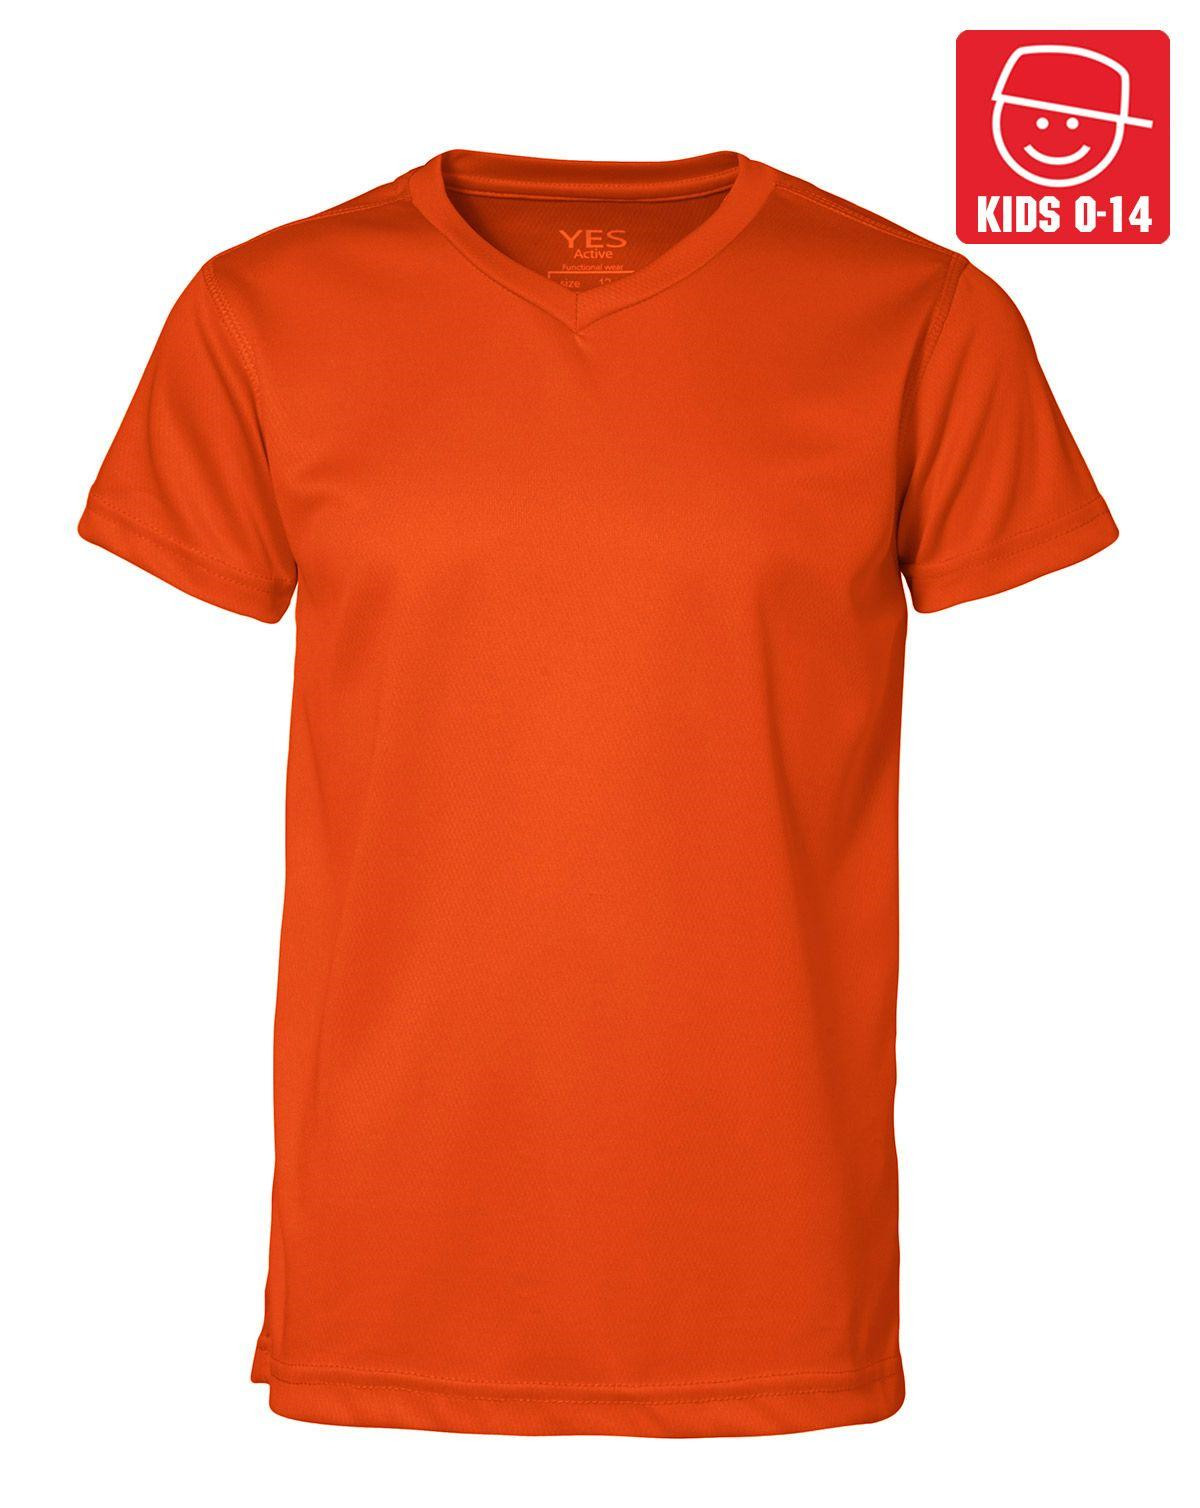 Image of   ID YES Svedtransporterende T-shirt til Børn (Orange, 152)